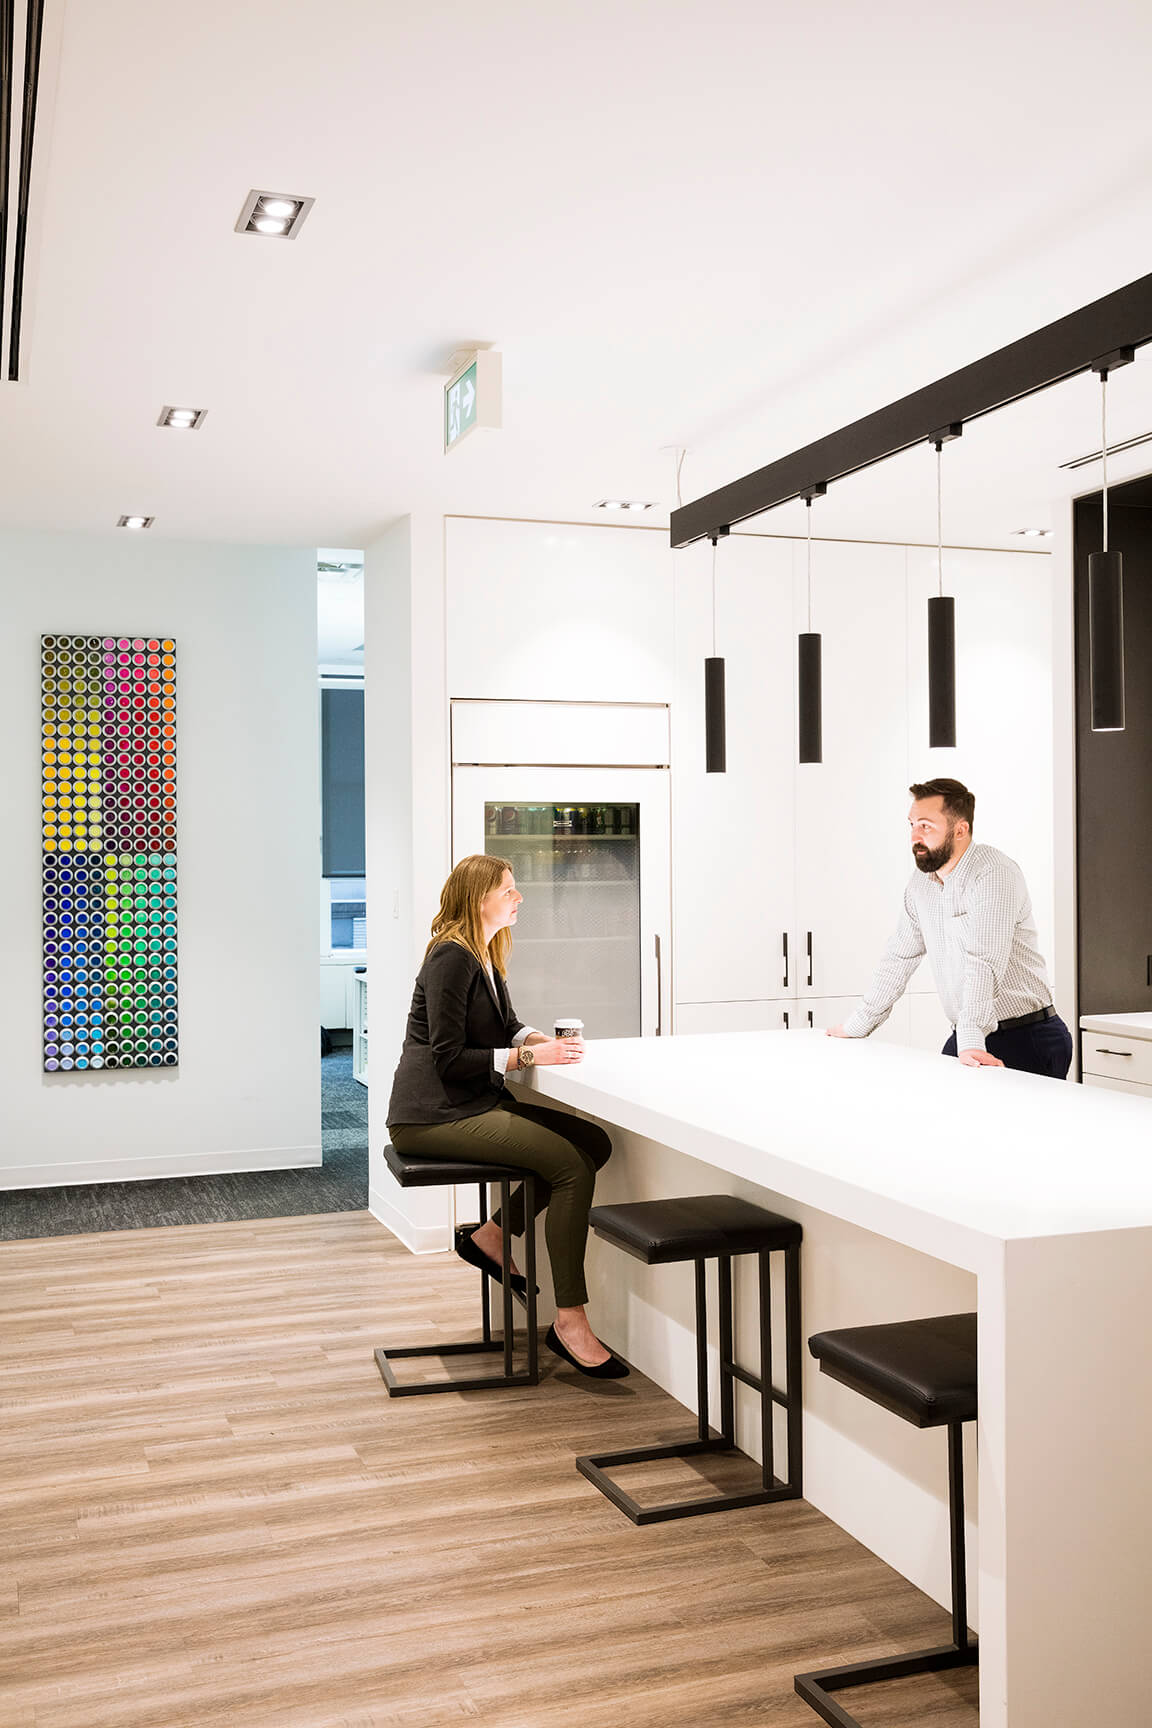 An architect and a designer chat over a long, high table with black, high chairs in the kitchenette at Zeidler's office in Calgary.